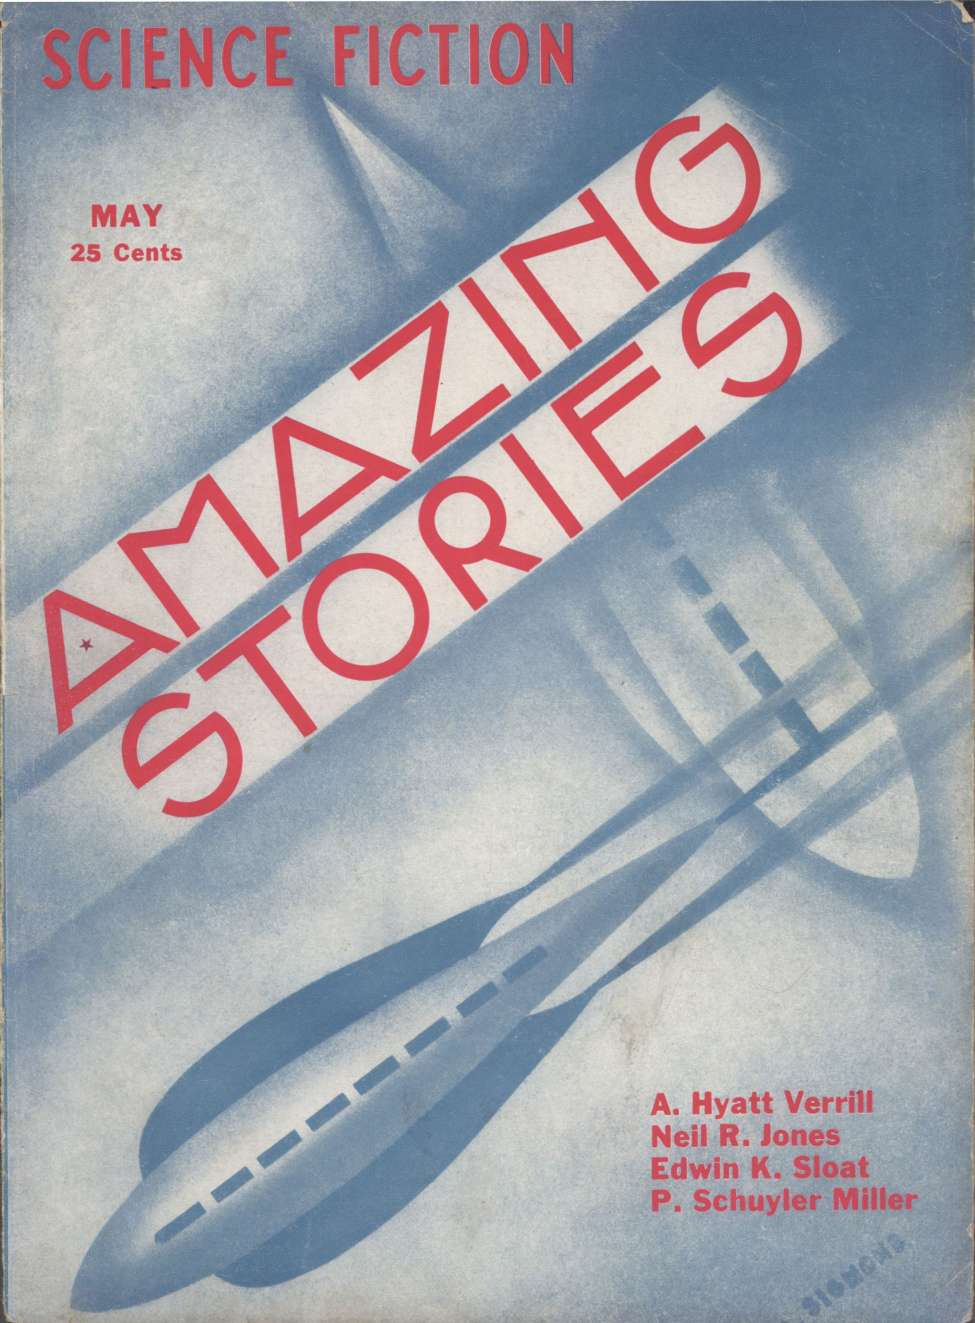 Comic Book Cover For Amazing Stories v08 02 - The Death Drum - A. Hyatt Verrill